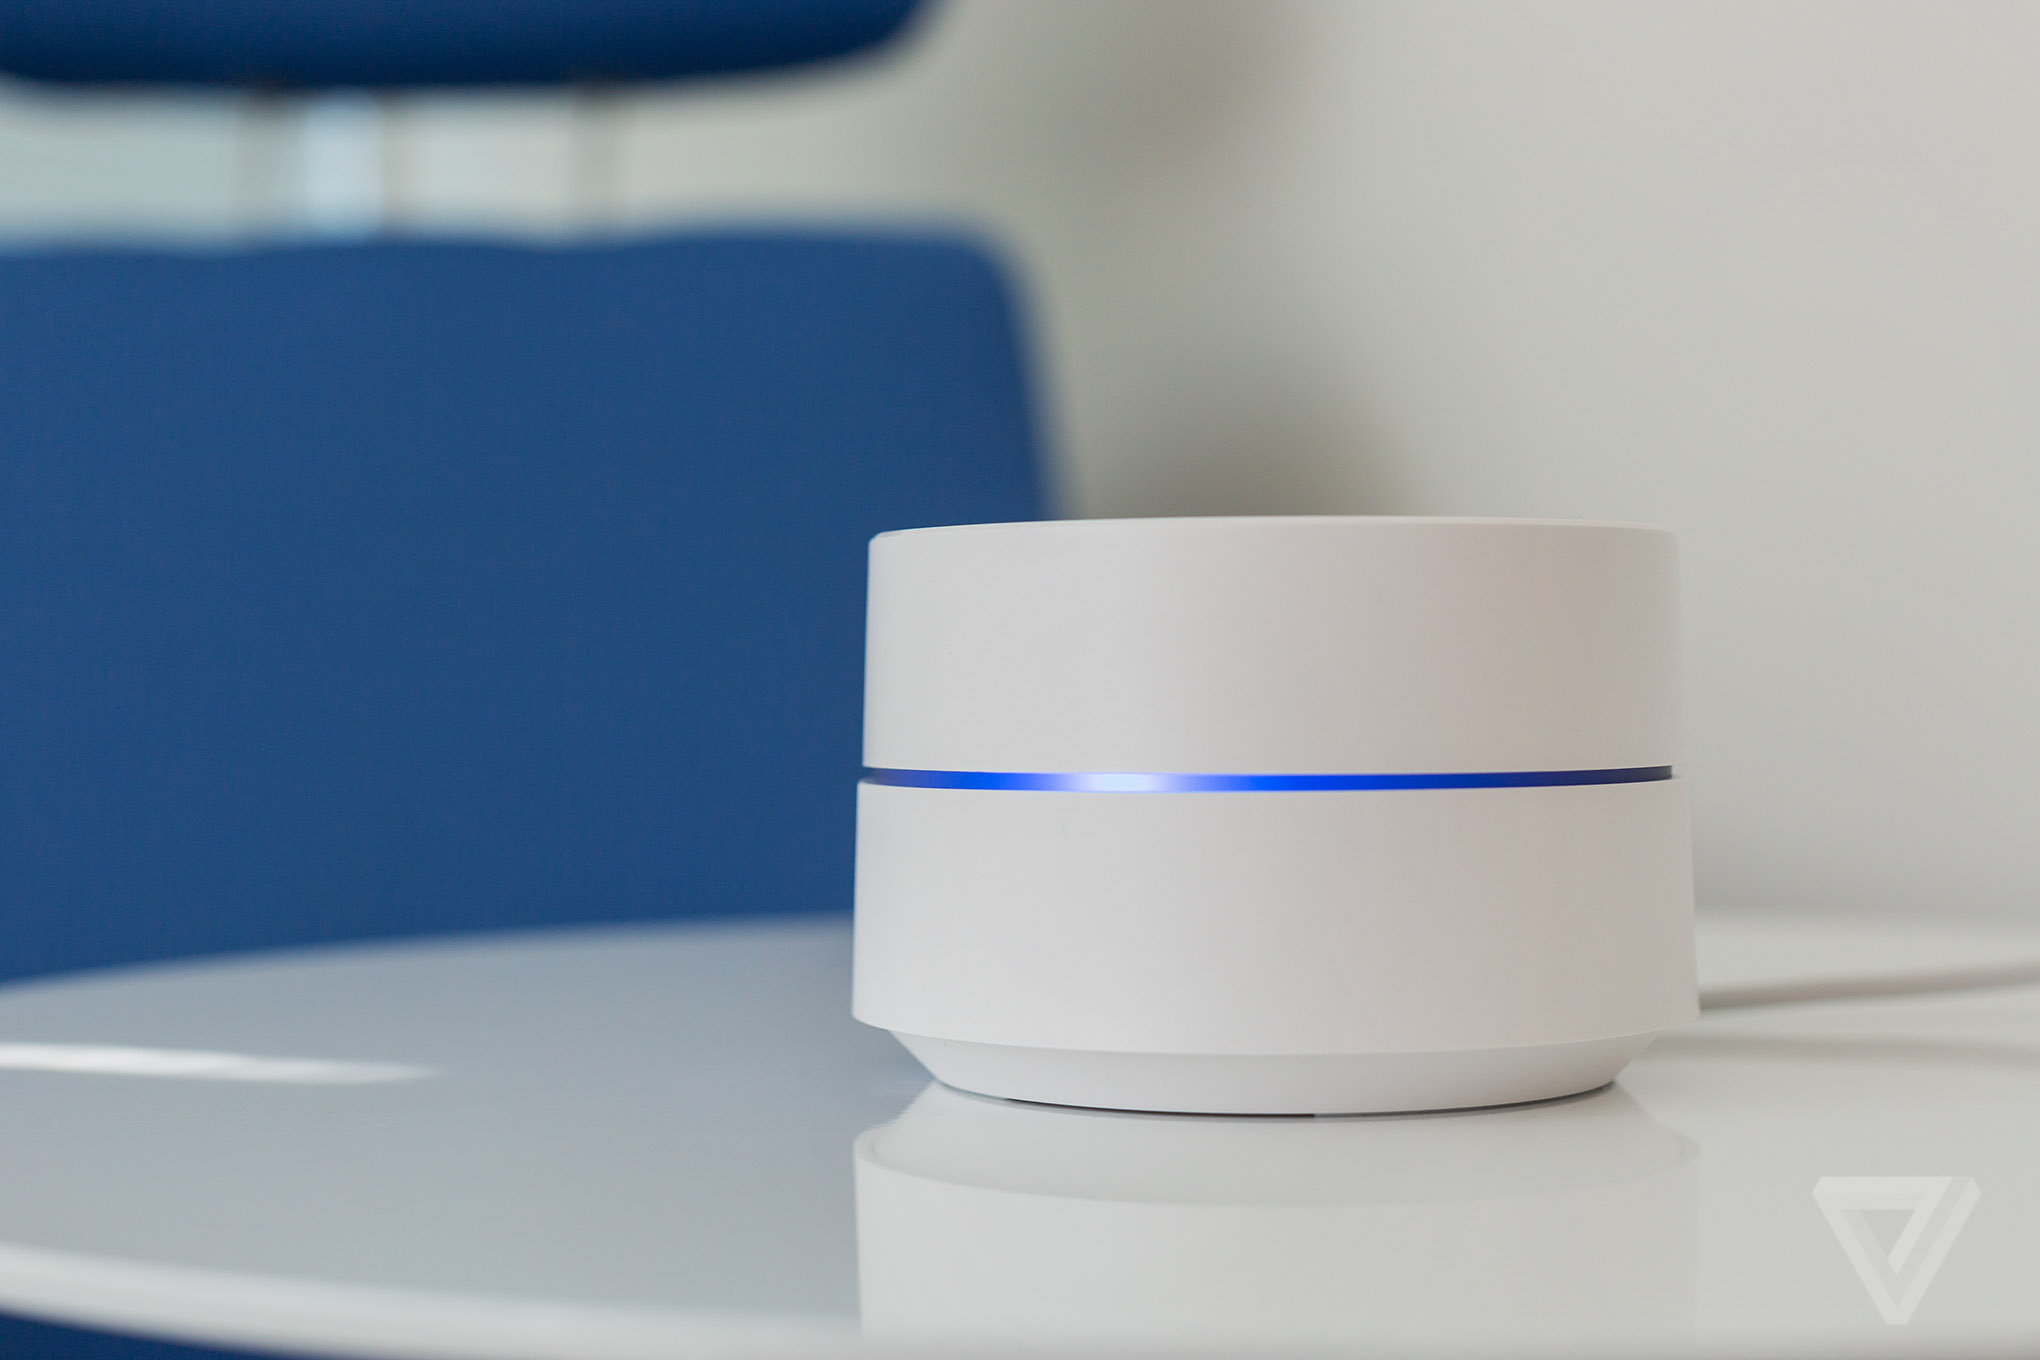 google 39 s new wifi routers are here to take on eero the verge. Black Bedroom Furniture Sets. Home Design Ideas